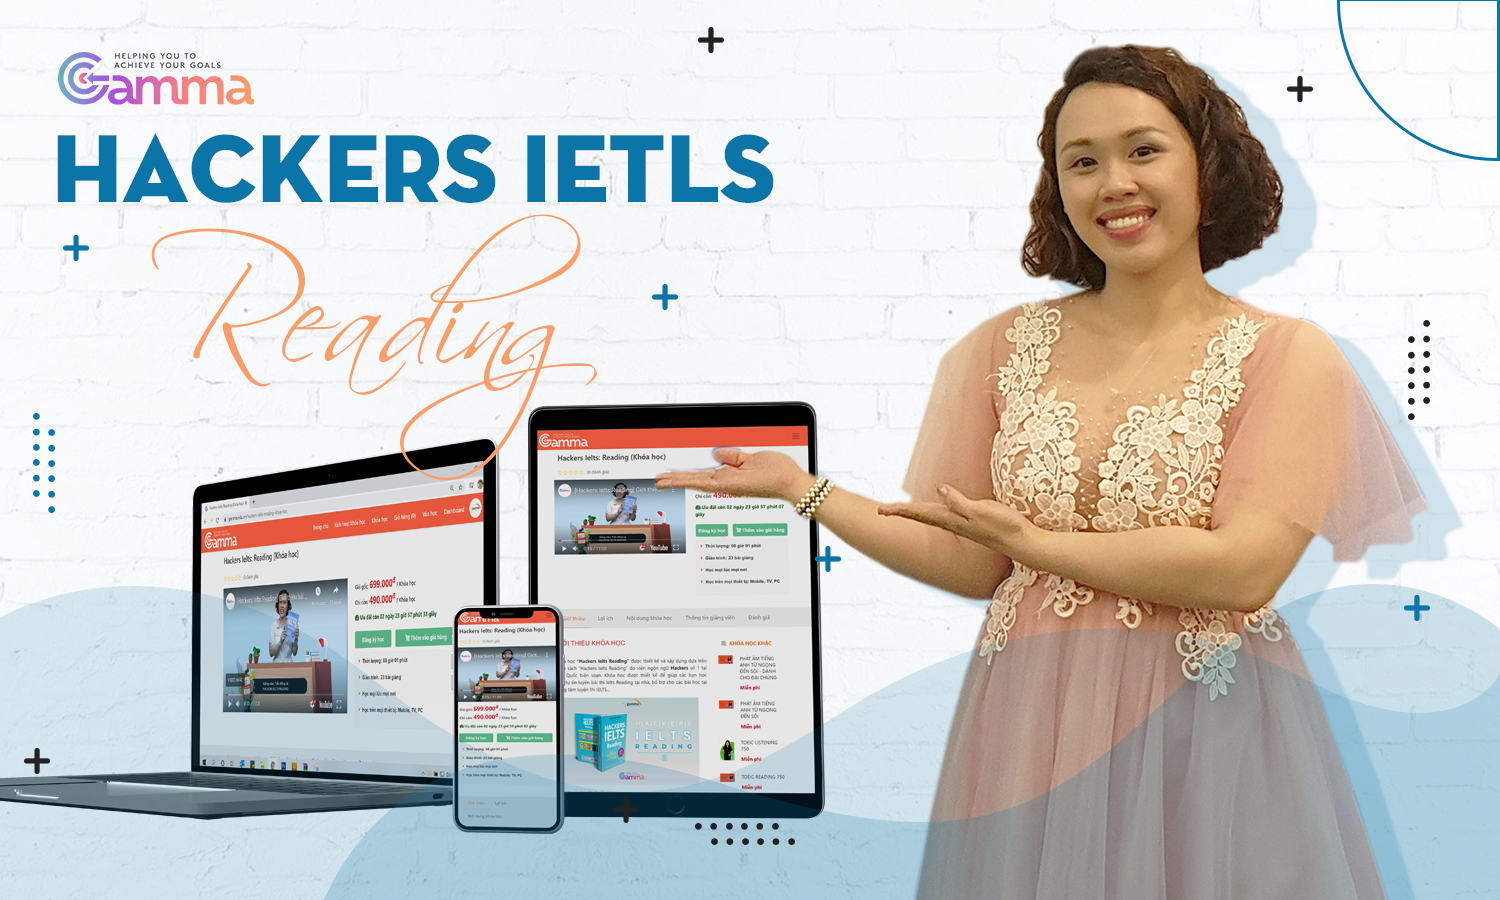 Hackers Ielts: Reading (Khóa học)